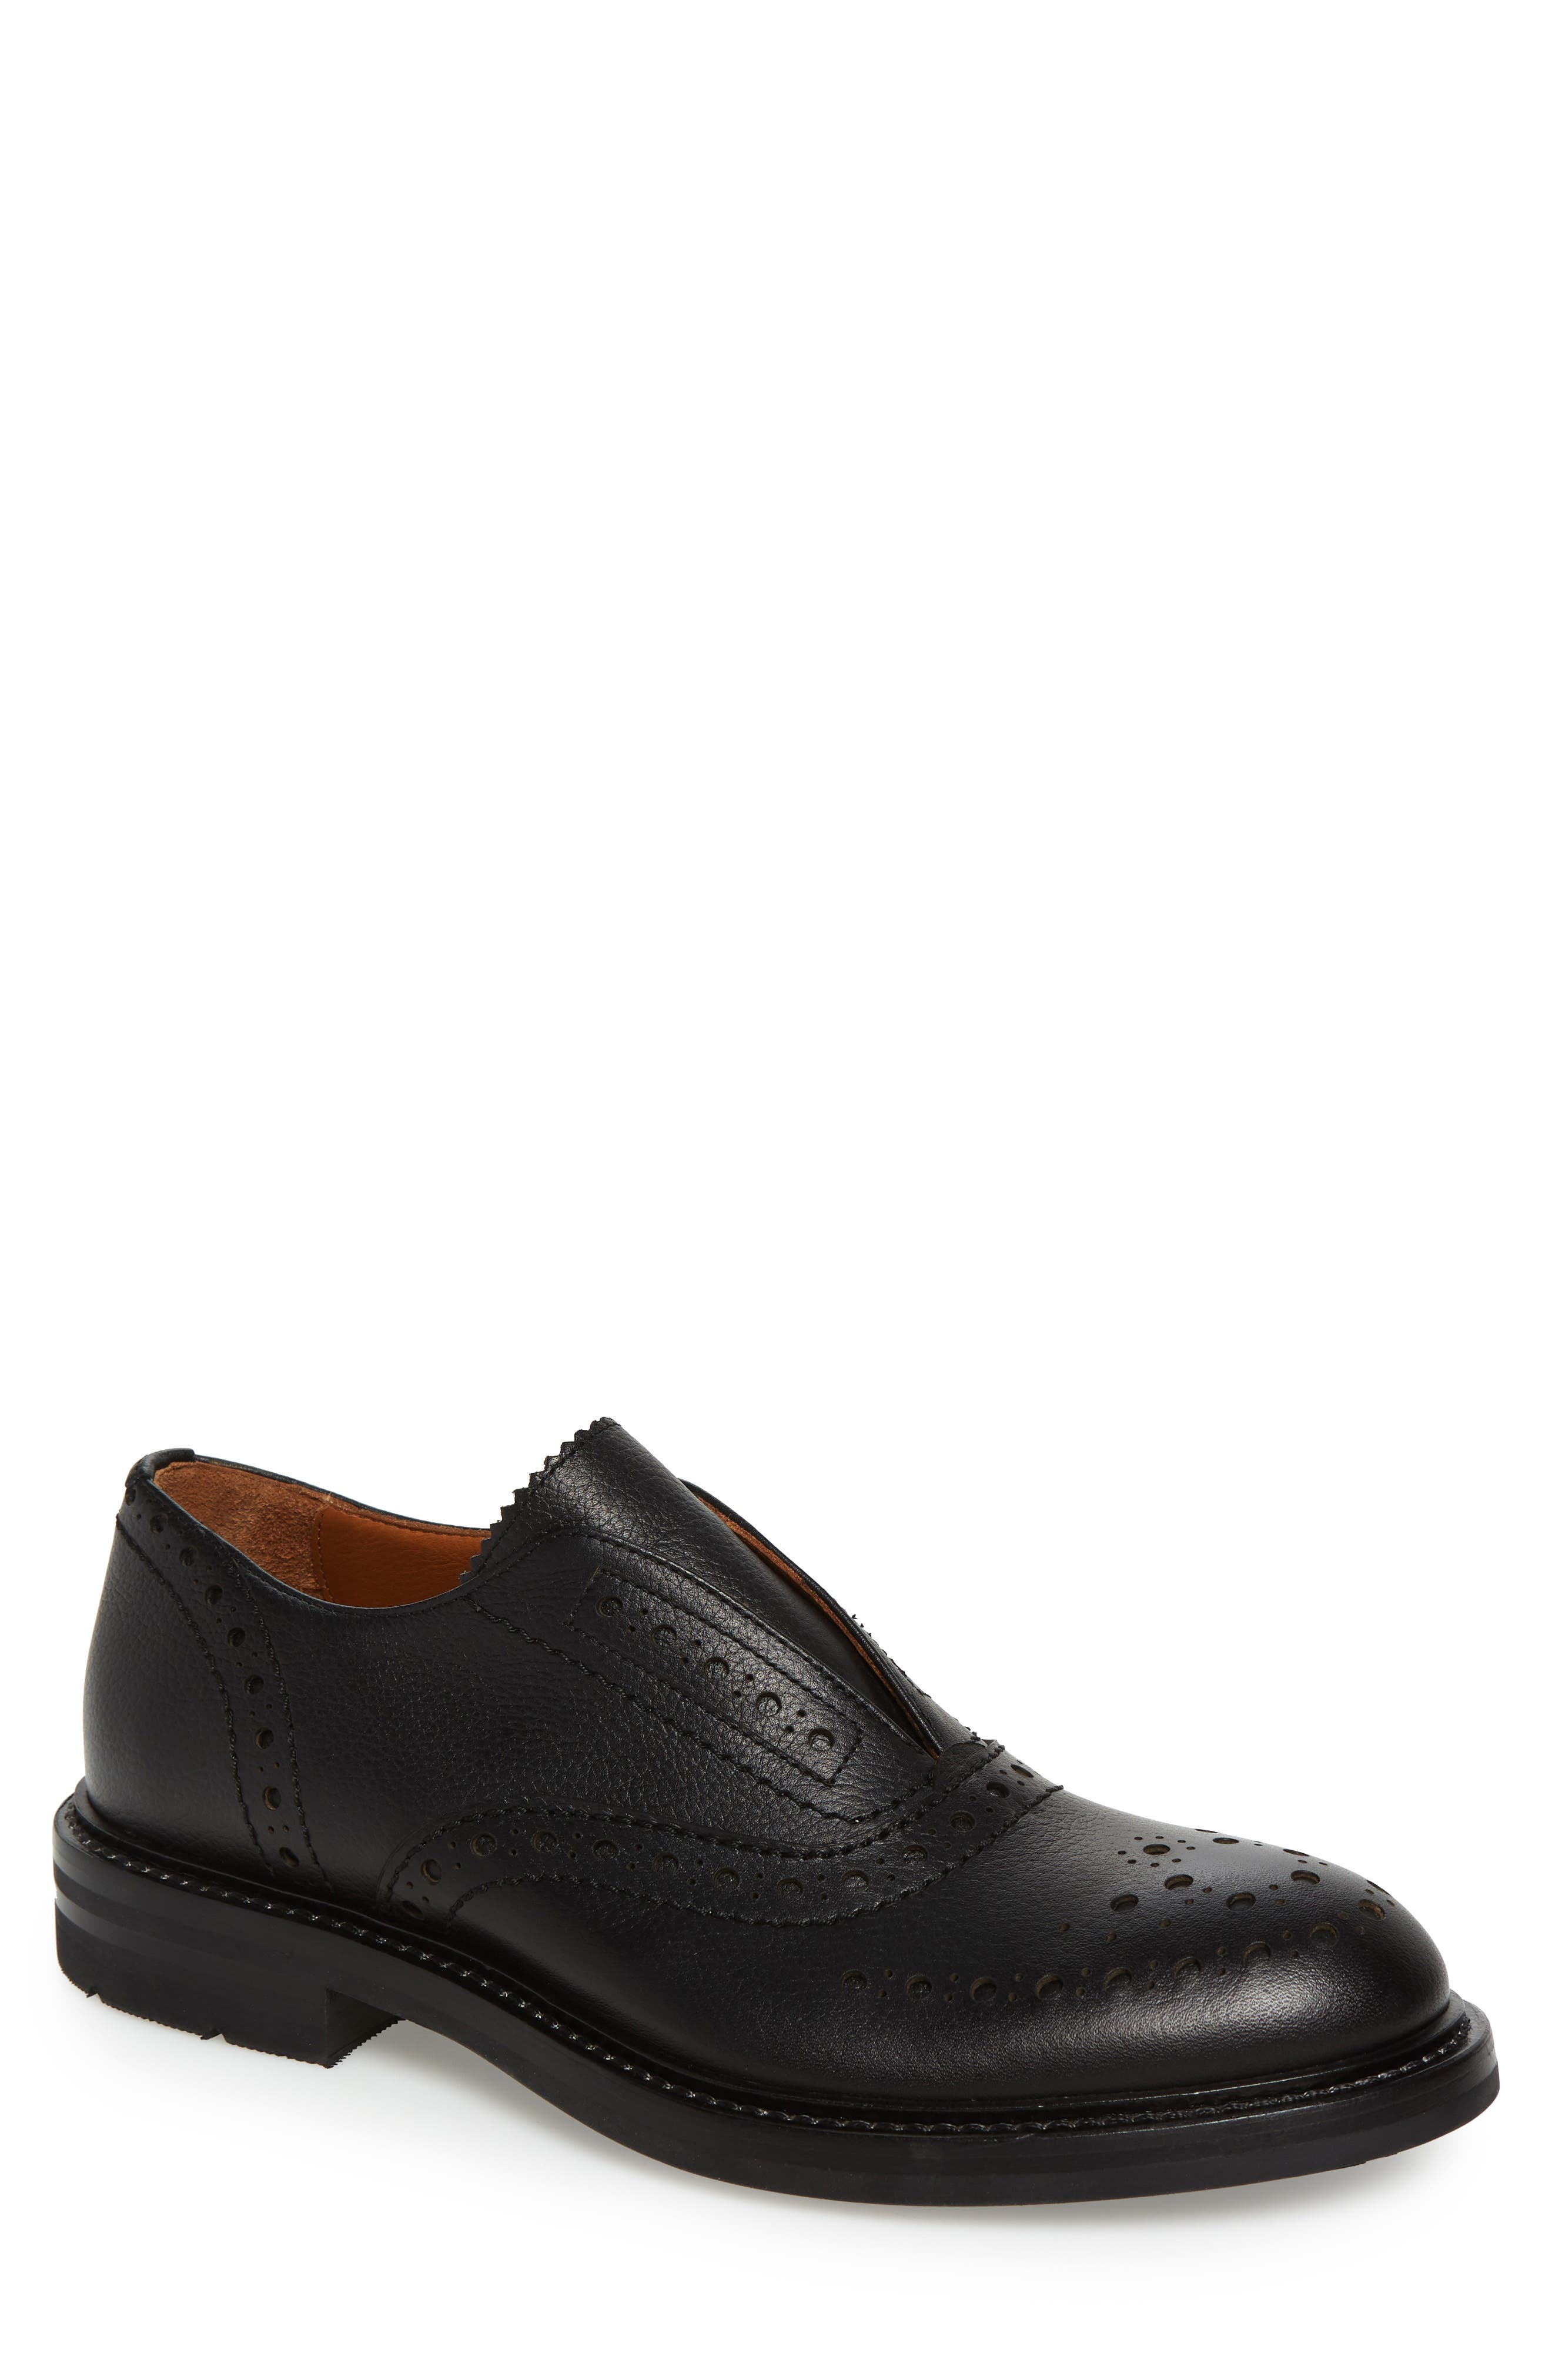 Romeo Weatherproof Laceless Oxford,                         Main,                         color, Black Leather